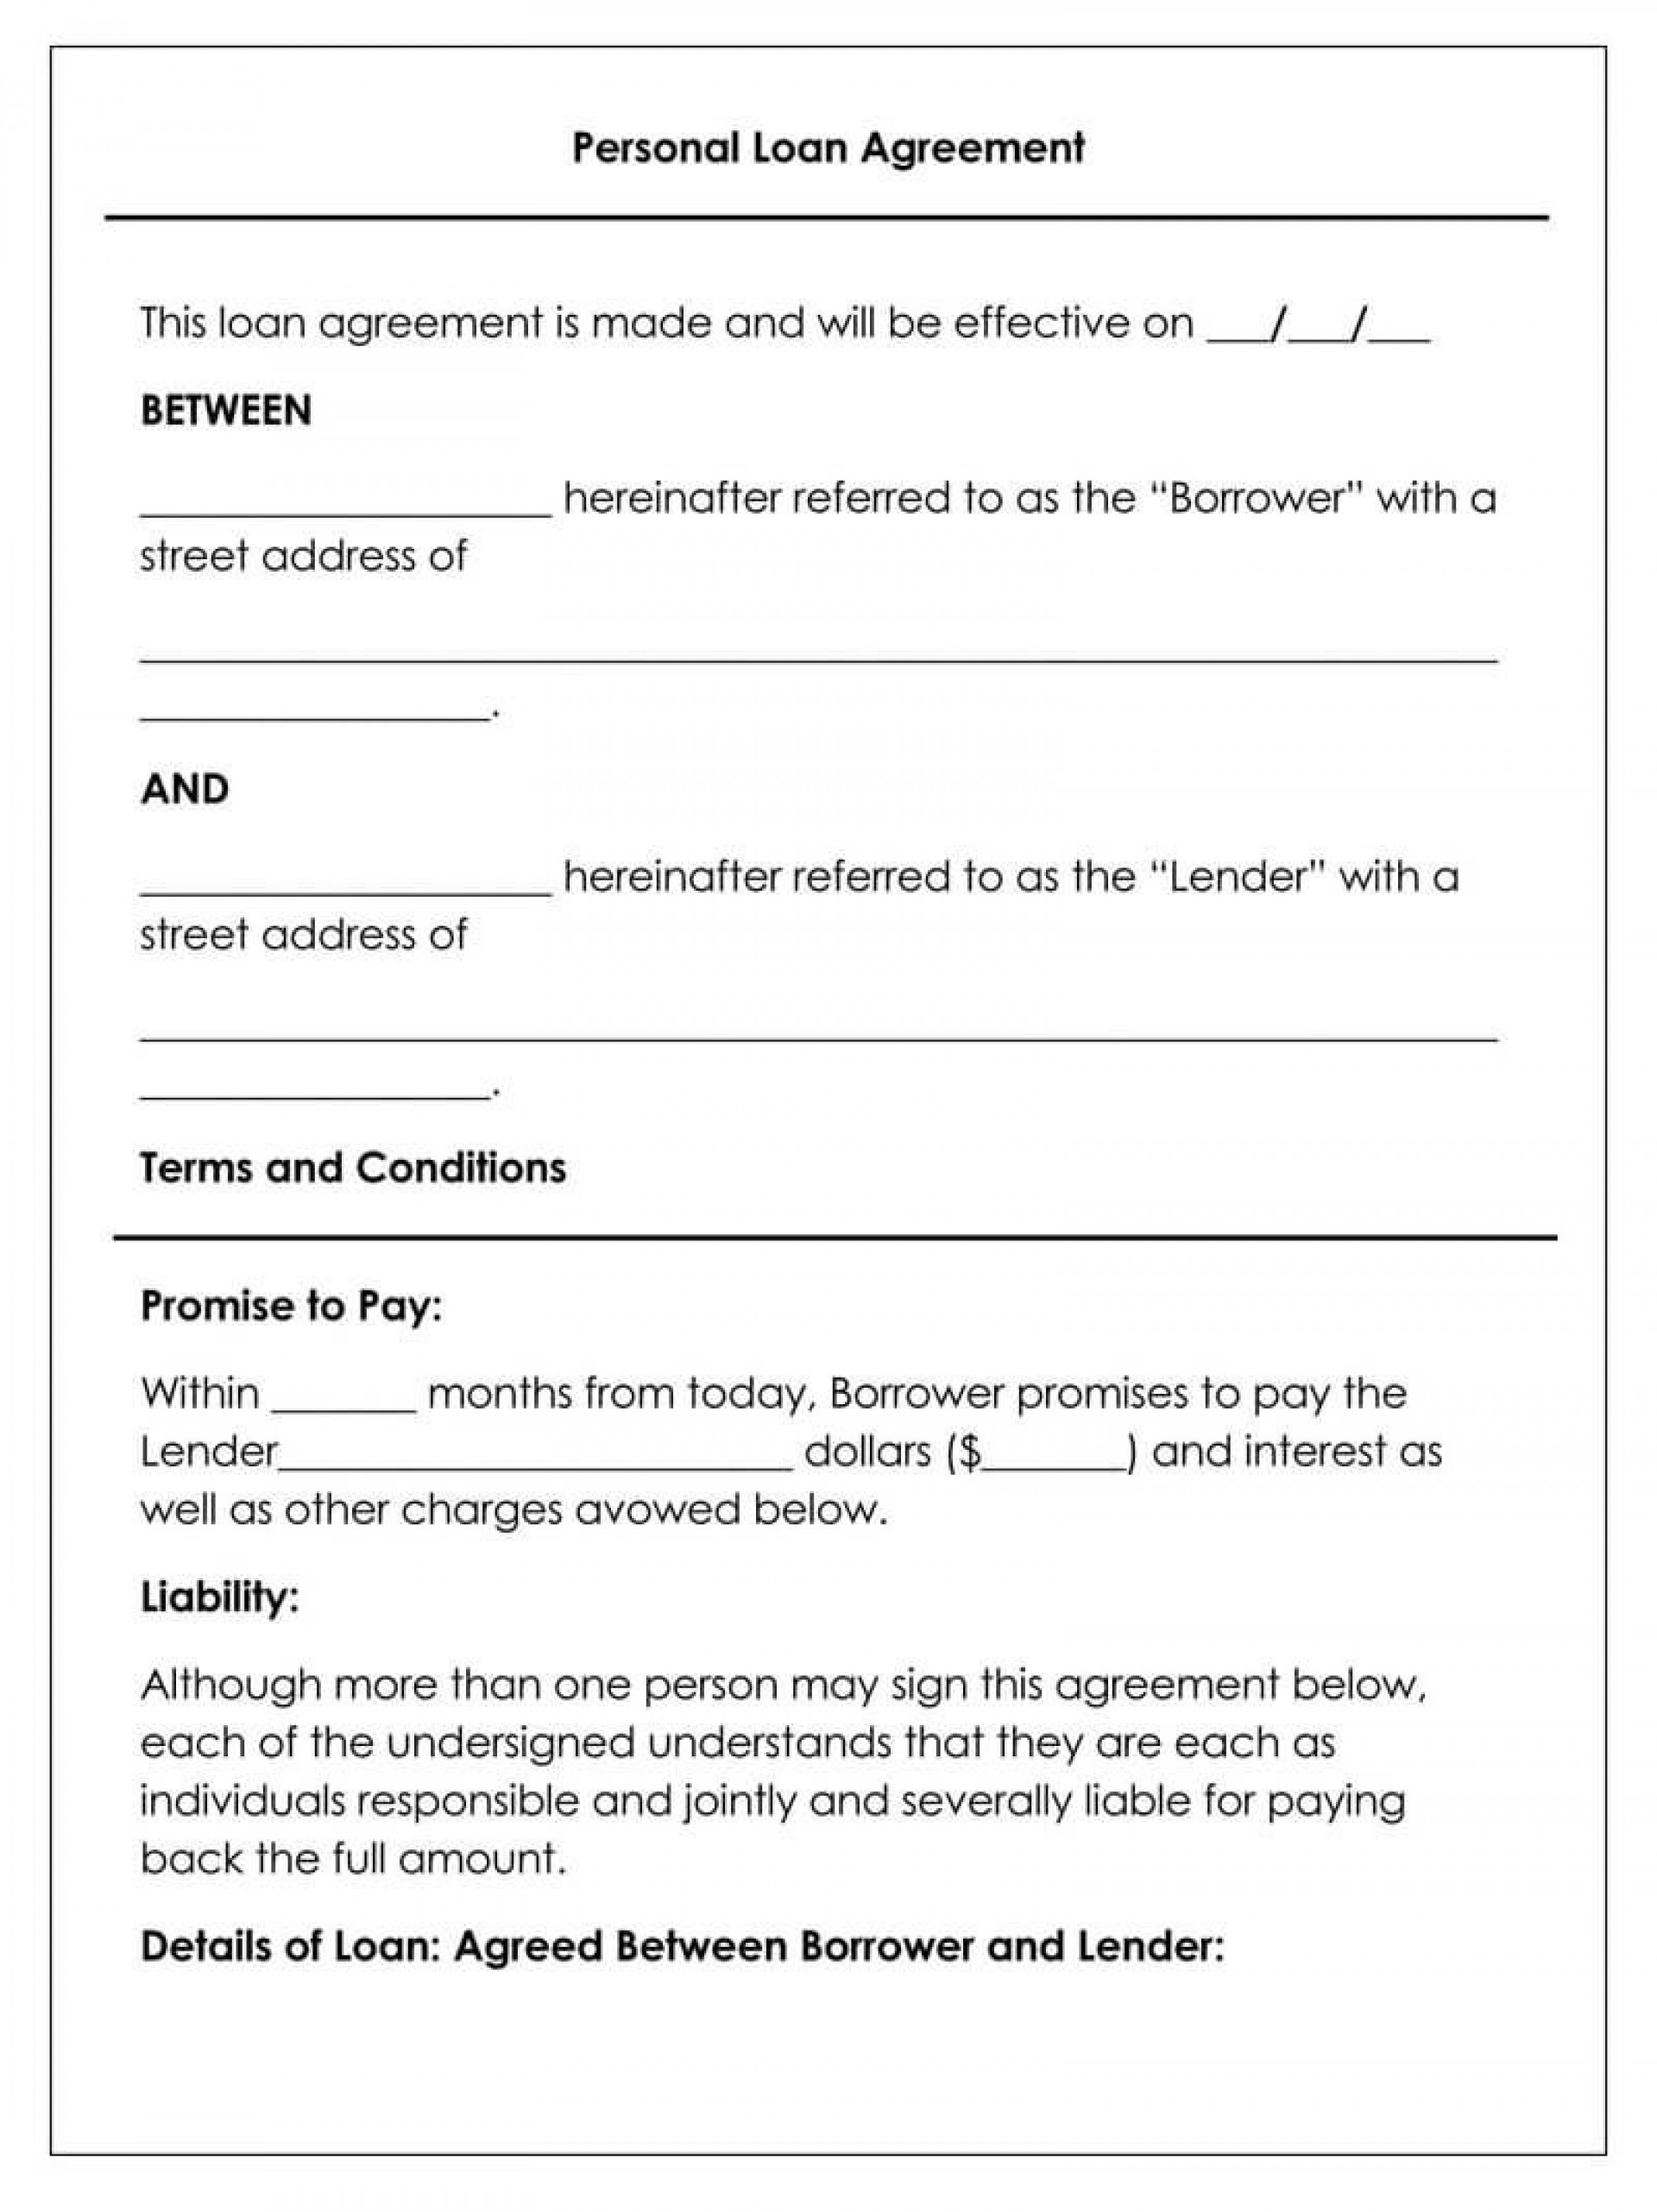 010 Stunning Family Loan Agreement Template Sample  Free Uk Friend And Simple Australia1920